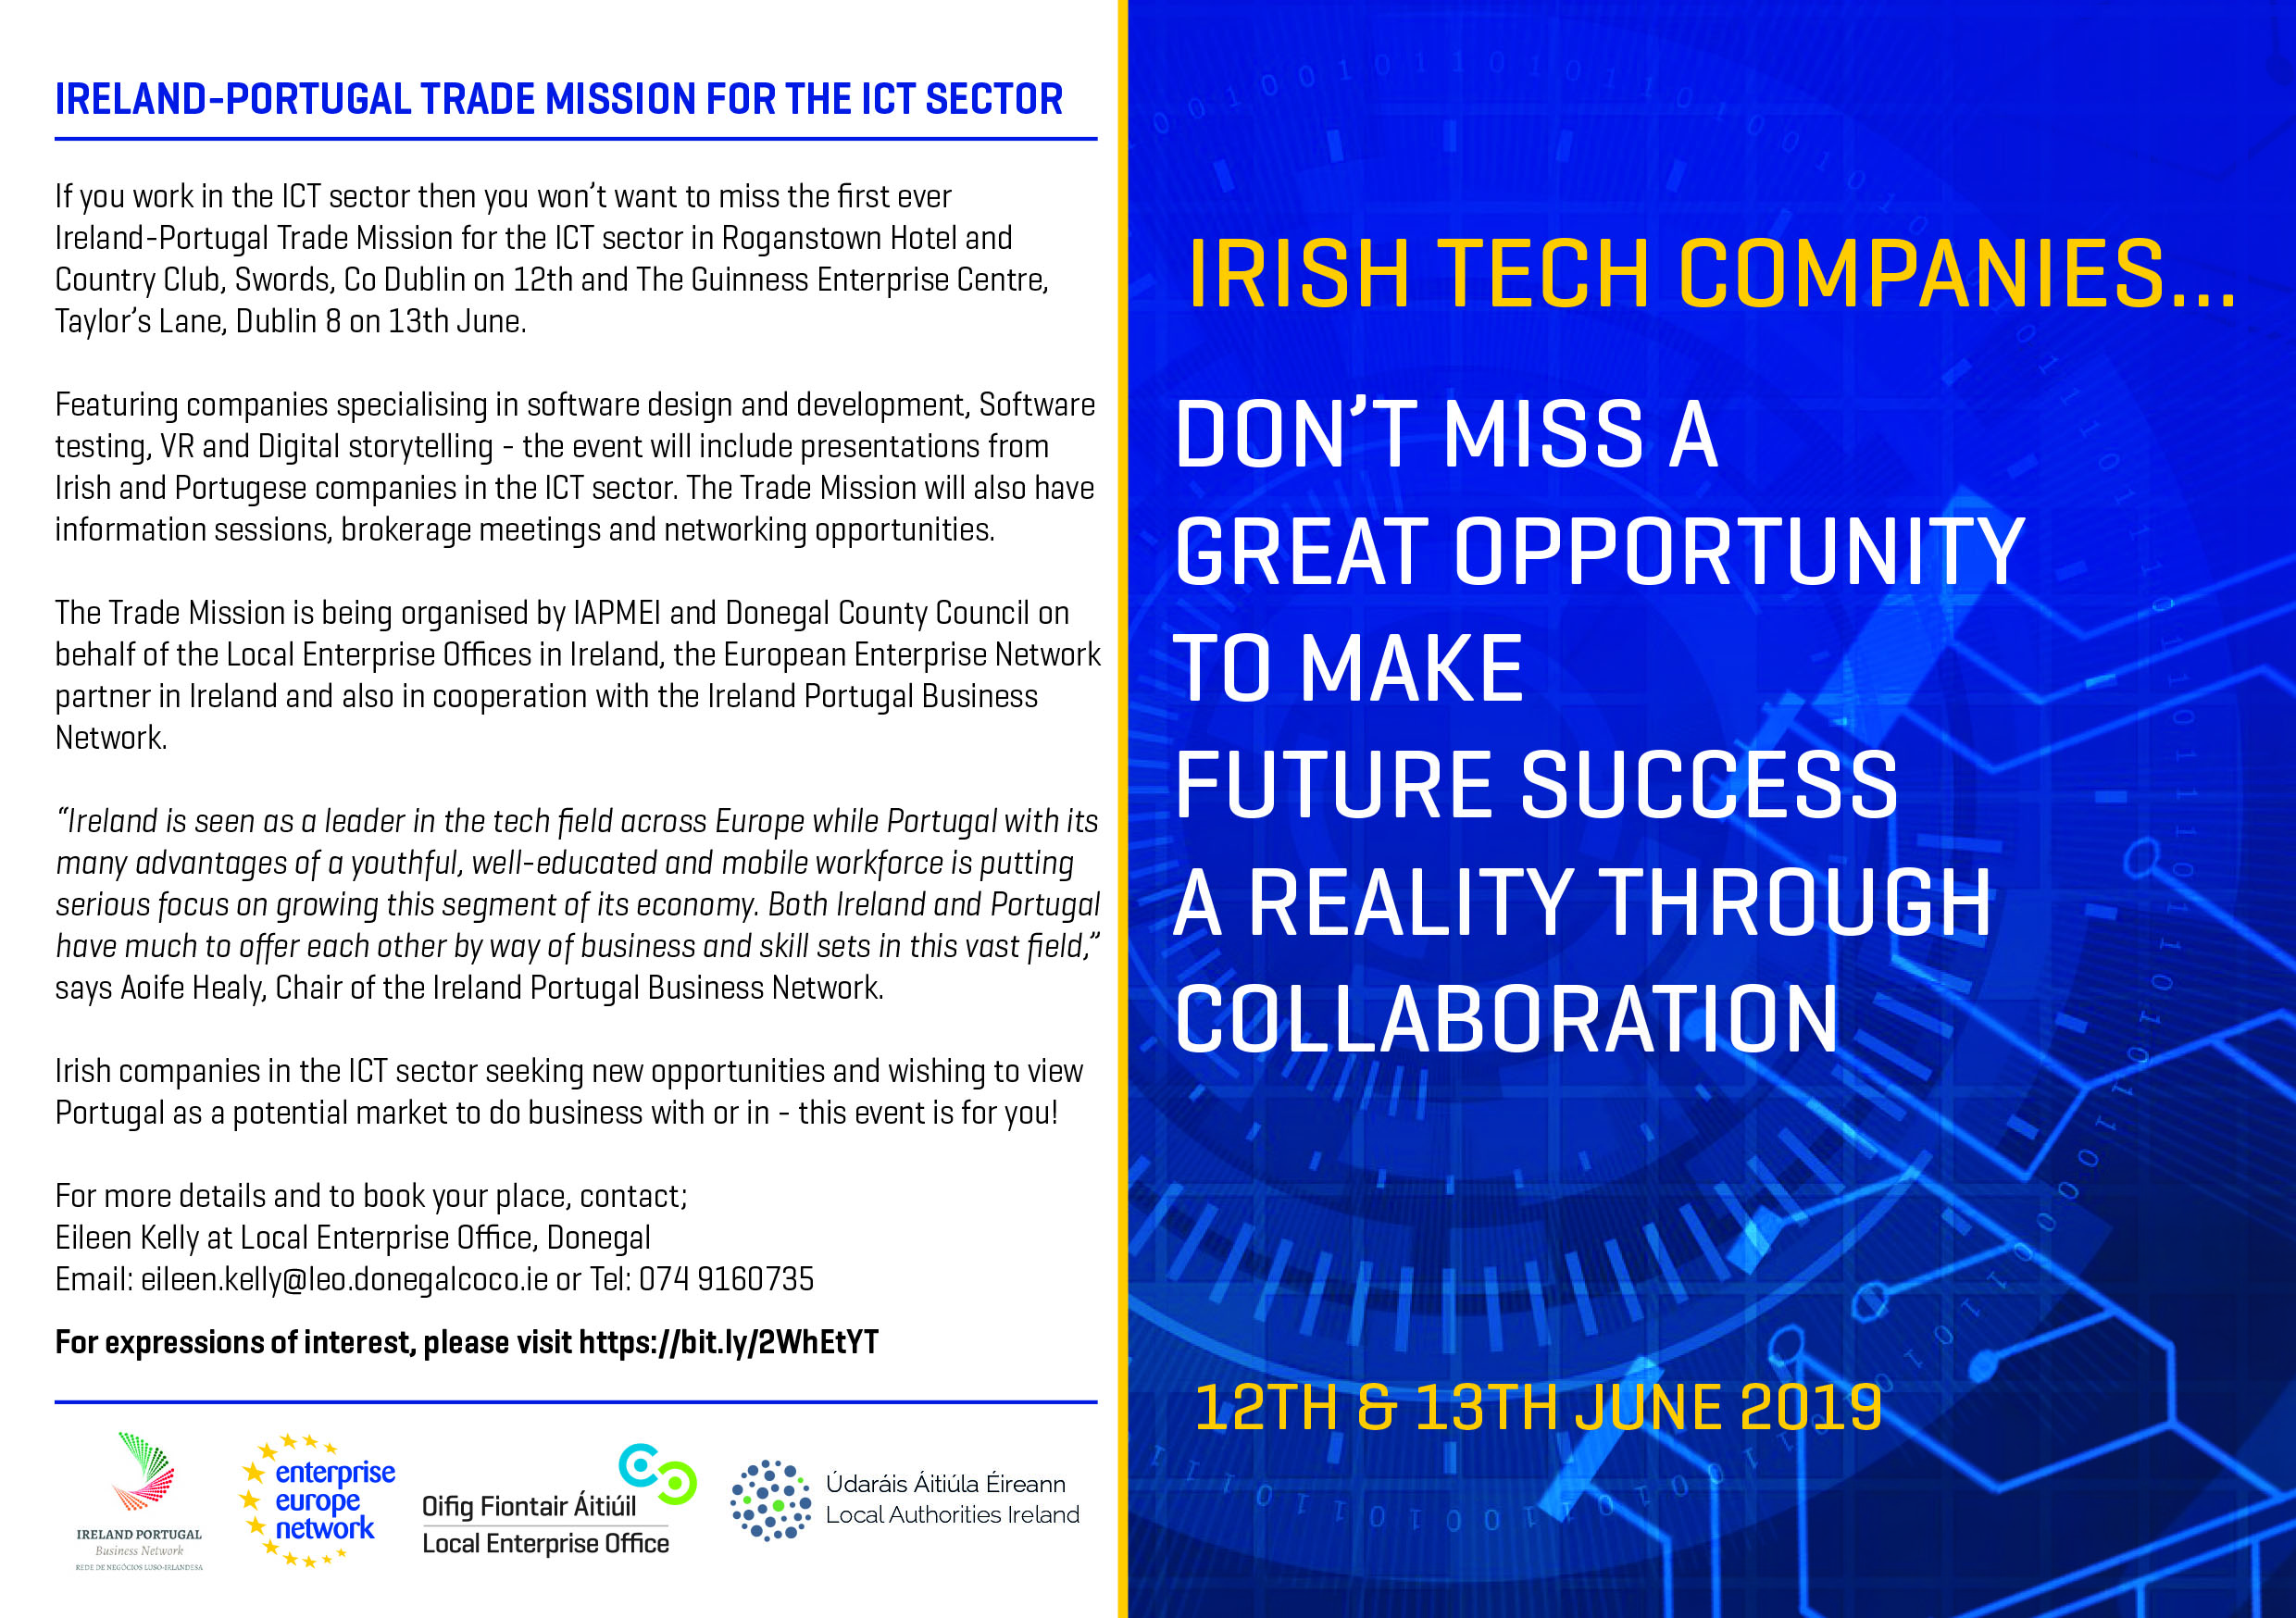 Ireland Portugal ICT Company Mission 12th & 13th June